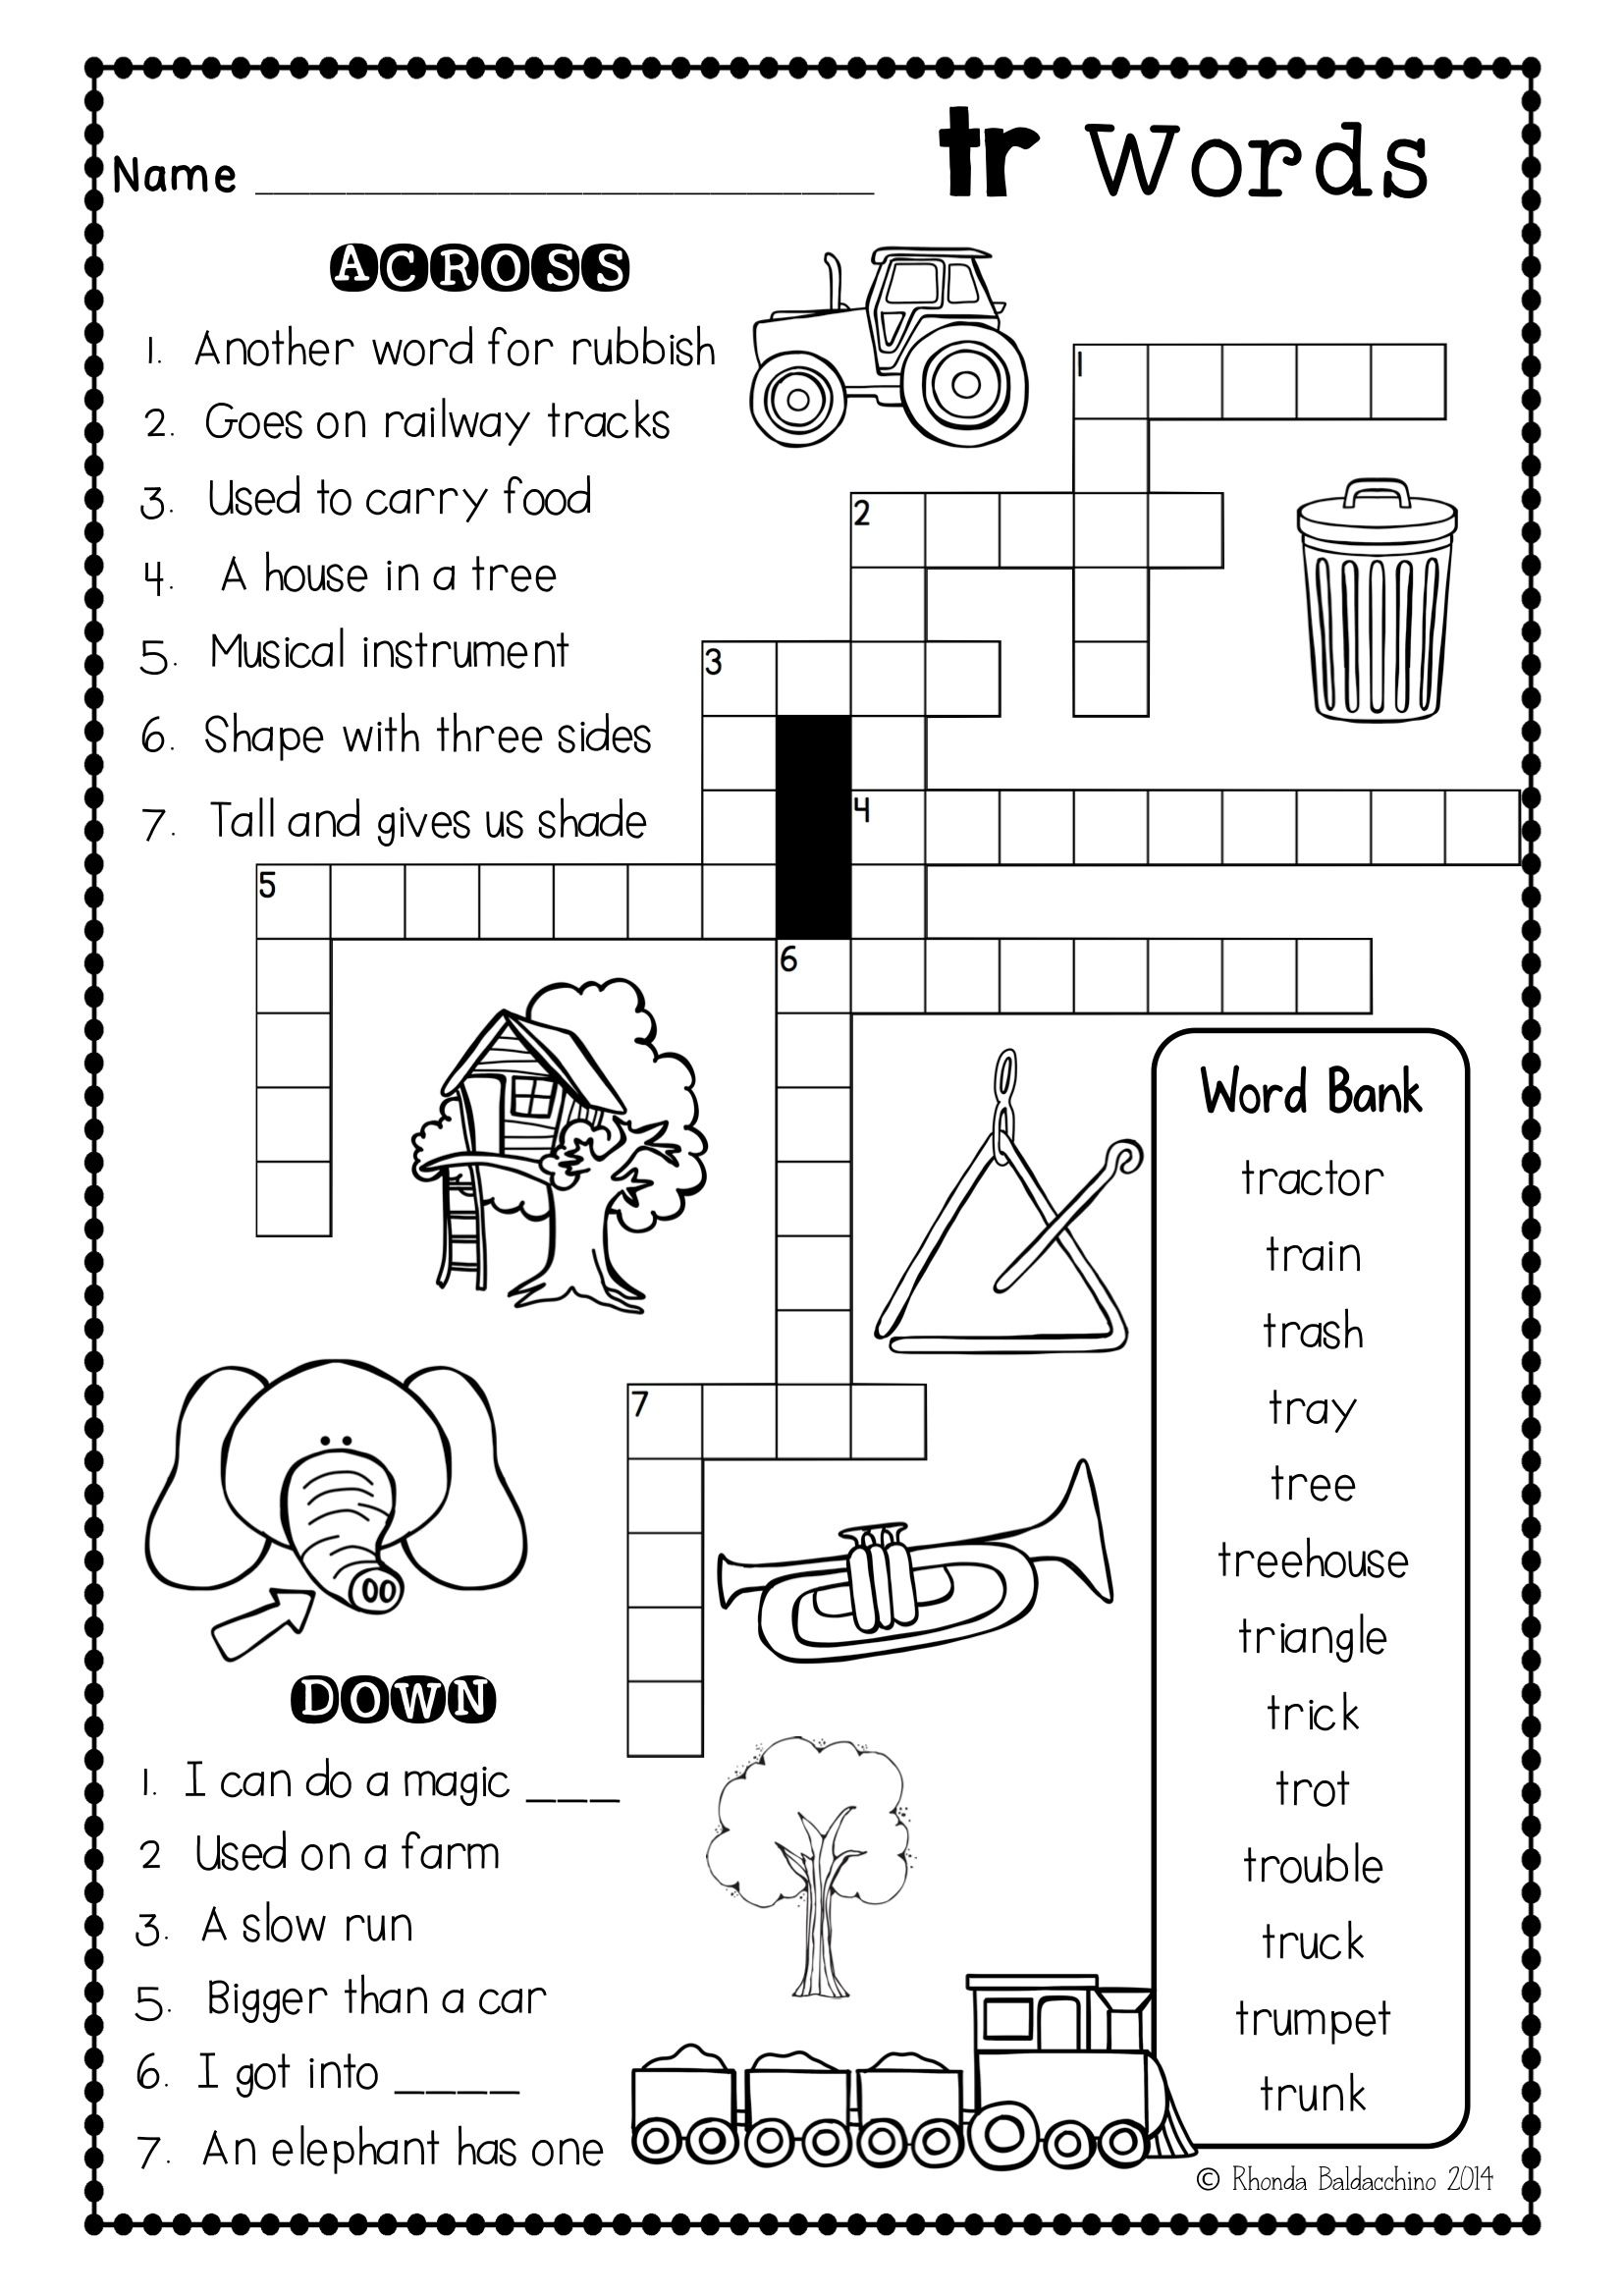 Crossword fun blends phonics programs consonant blends and these are fun blends crossword puzzles to supplement any phonics program malvernweather Image collections